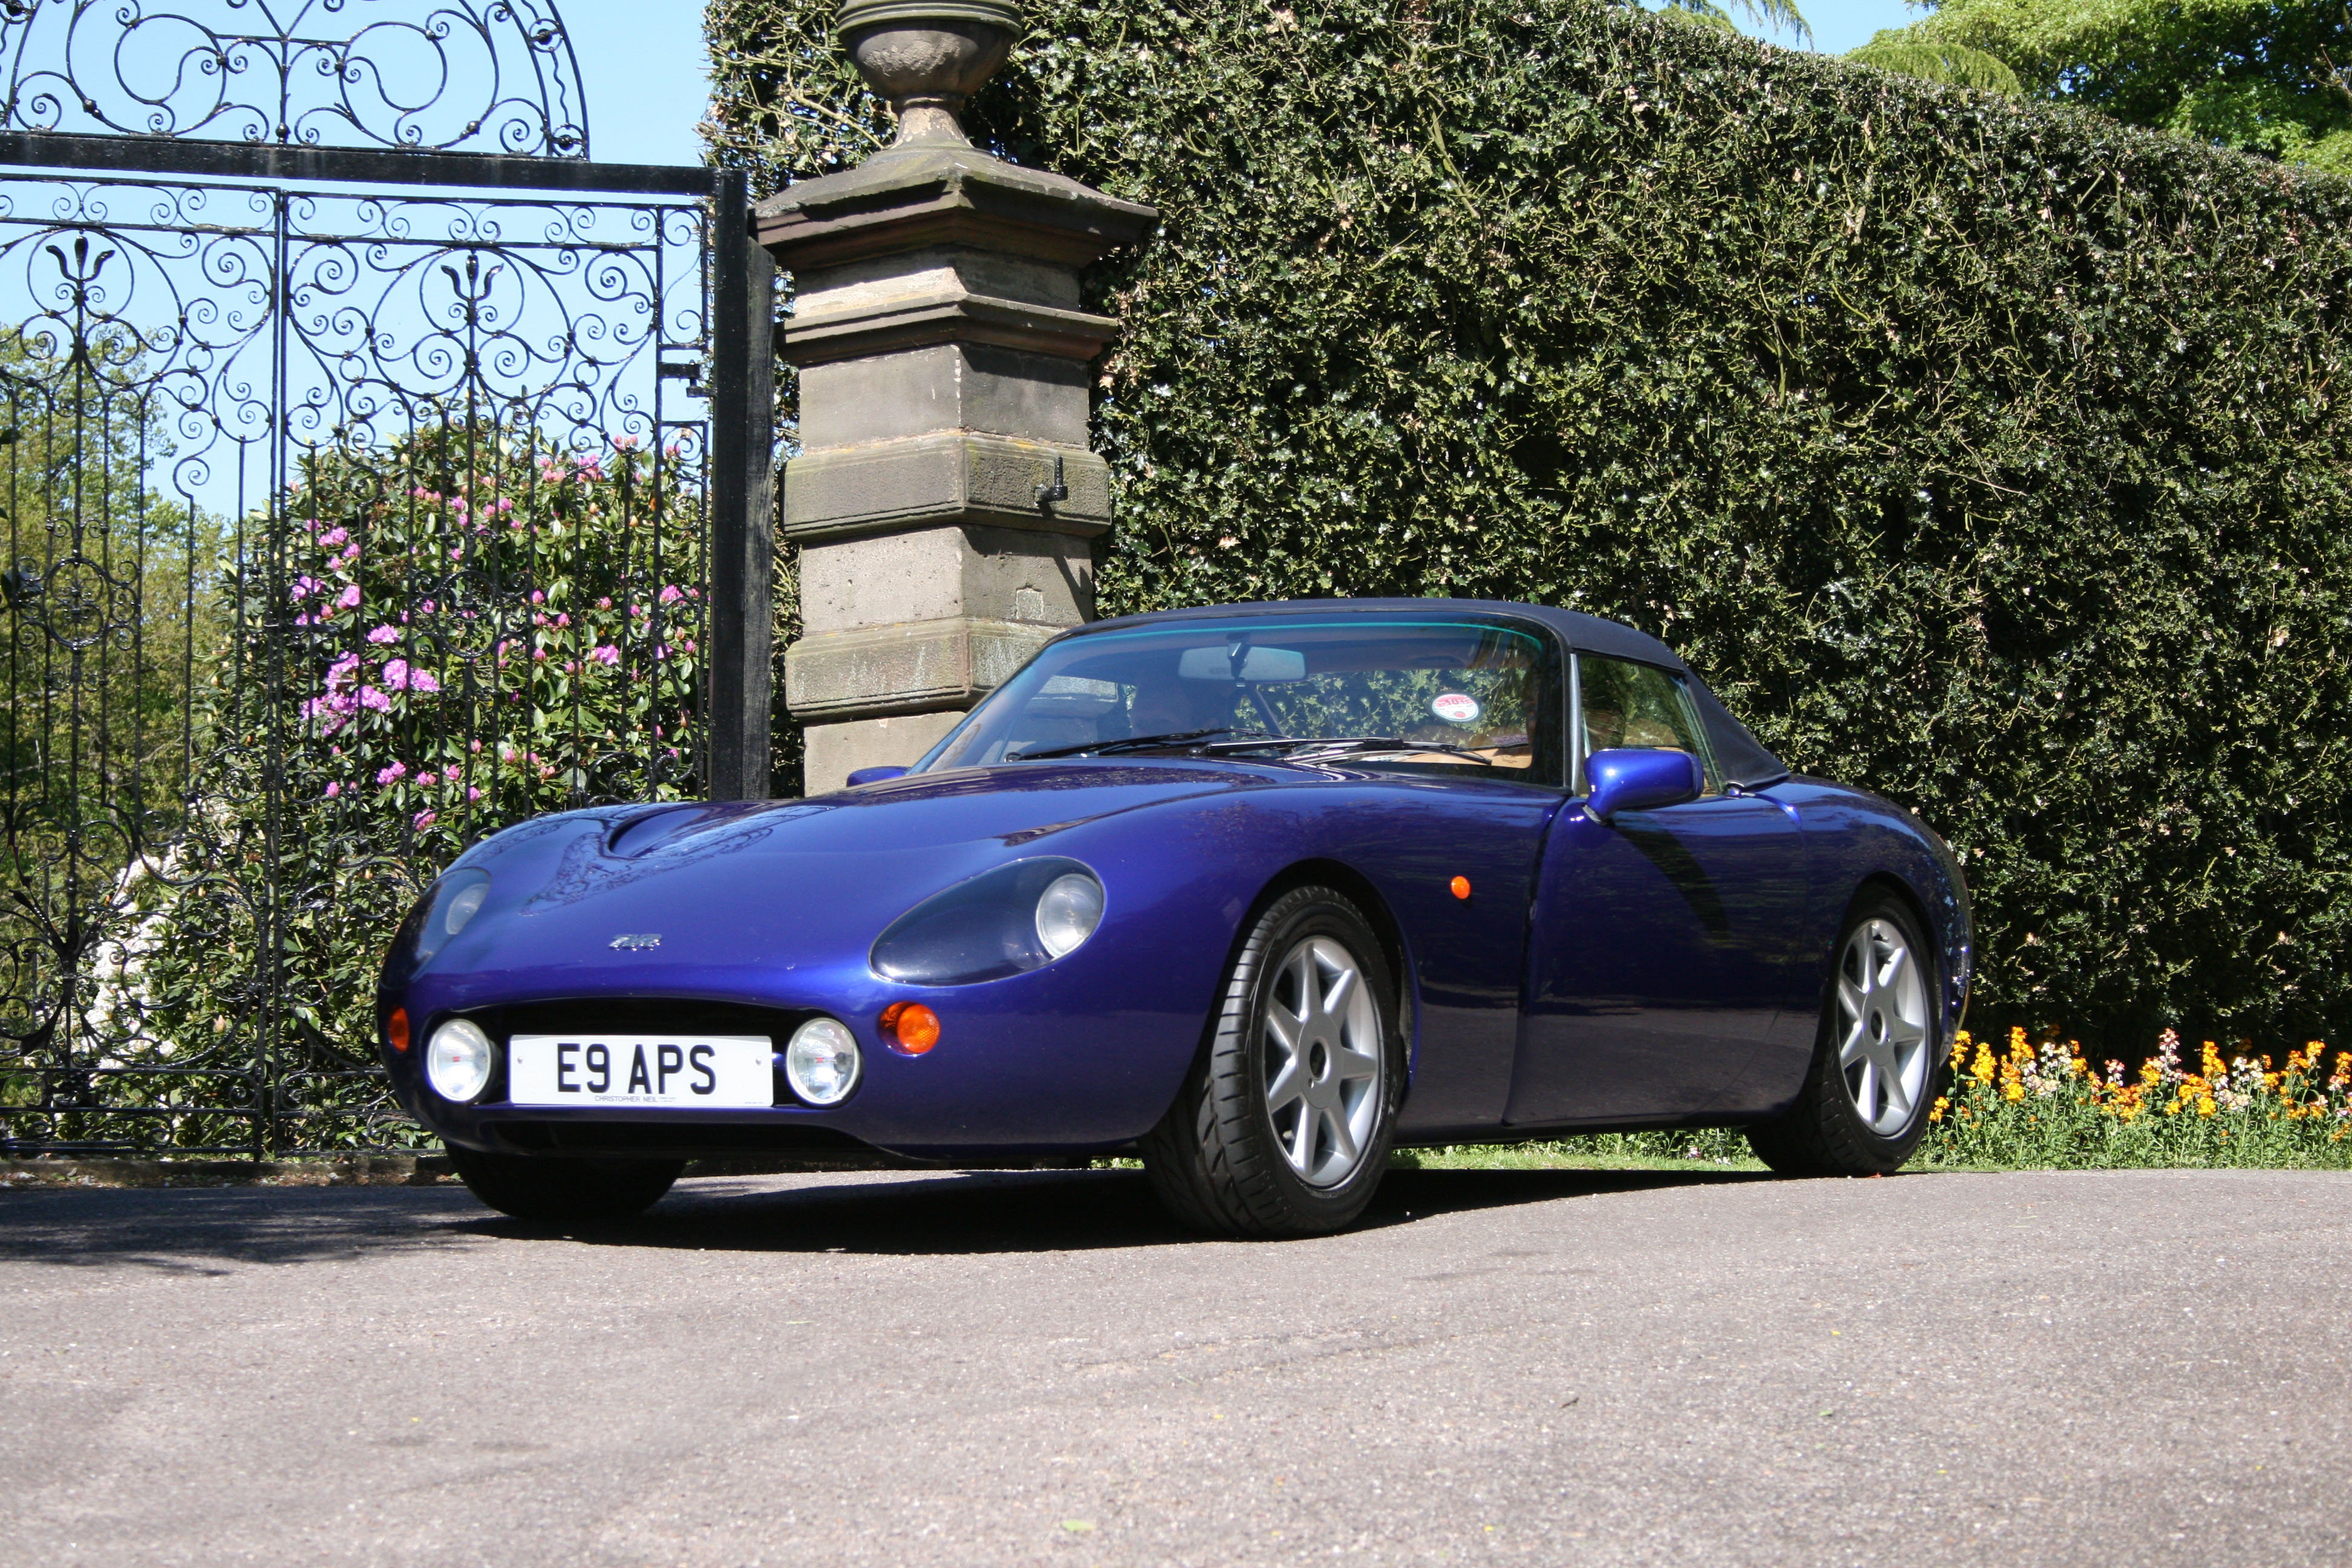 Tvr Griffith #12